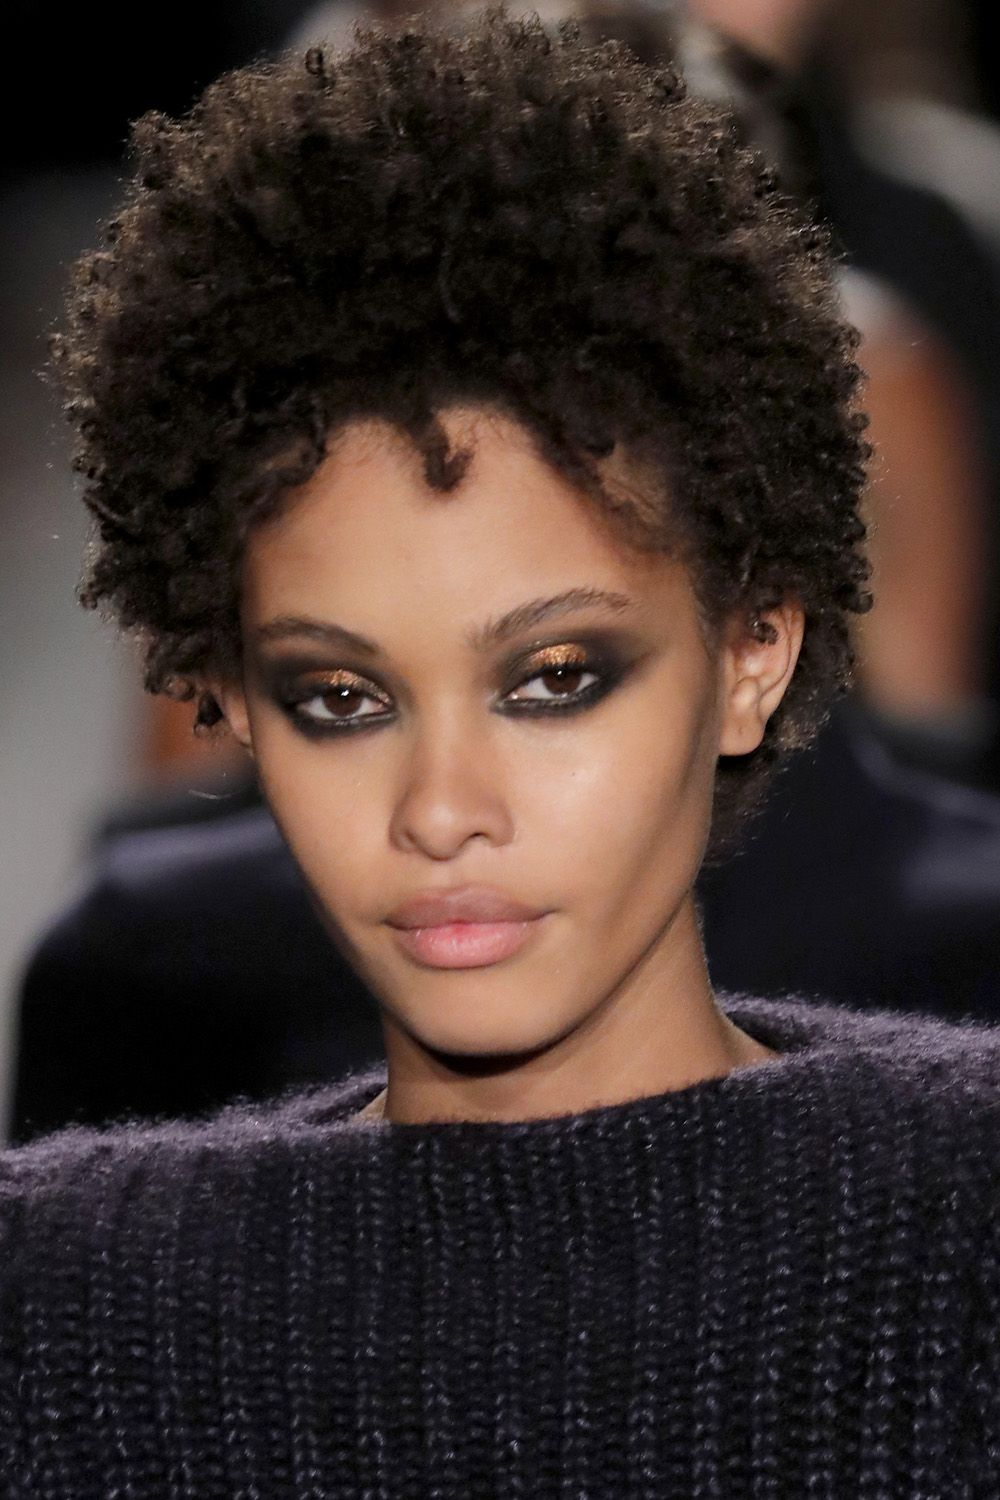 "<p>An eye look as strong and unapologetic as the women who wore it on the runway at Brandon Maxwell. ""We are embracing the difference in the looks, it's the same makeup with different colors,"" says makeup artist Tom Pecheux, who painted the strong black-and-metallic eyeshadow on each model. ""I love the fact that it's the same, but it's not the same color. Like human beings—we are the same, but we are all different colors."" <span class=""redactor-invisible-space""></span></p>"